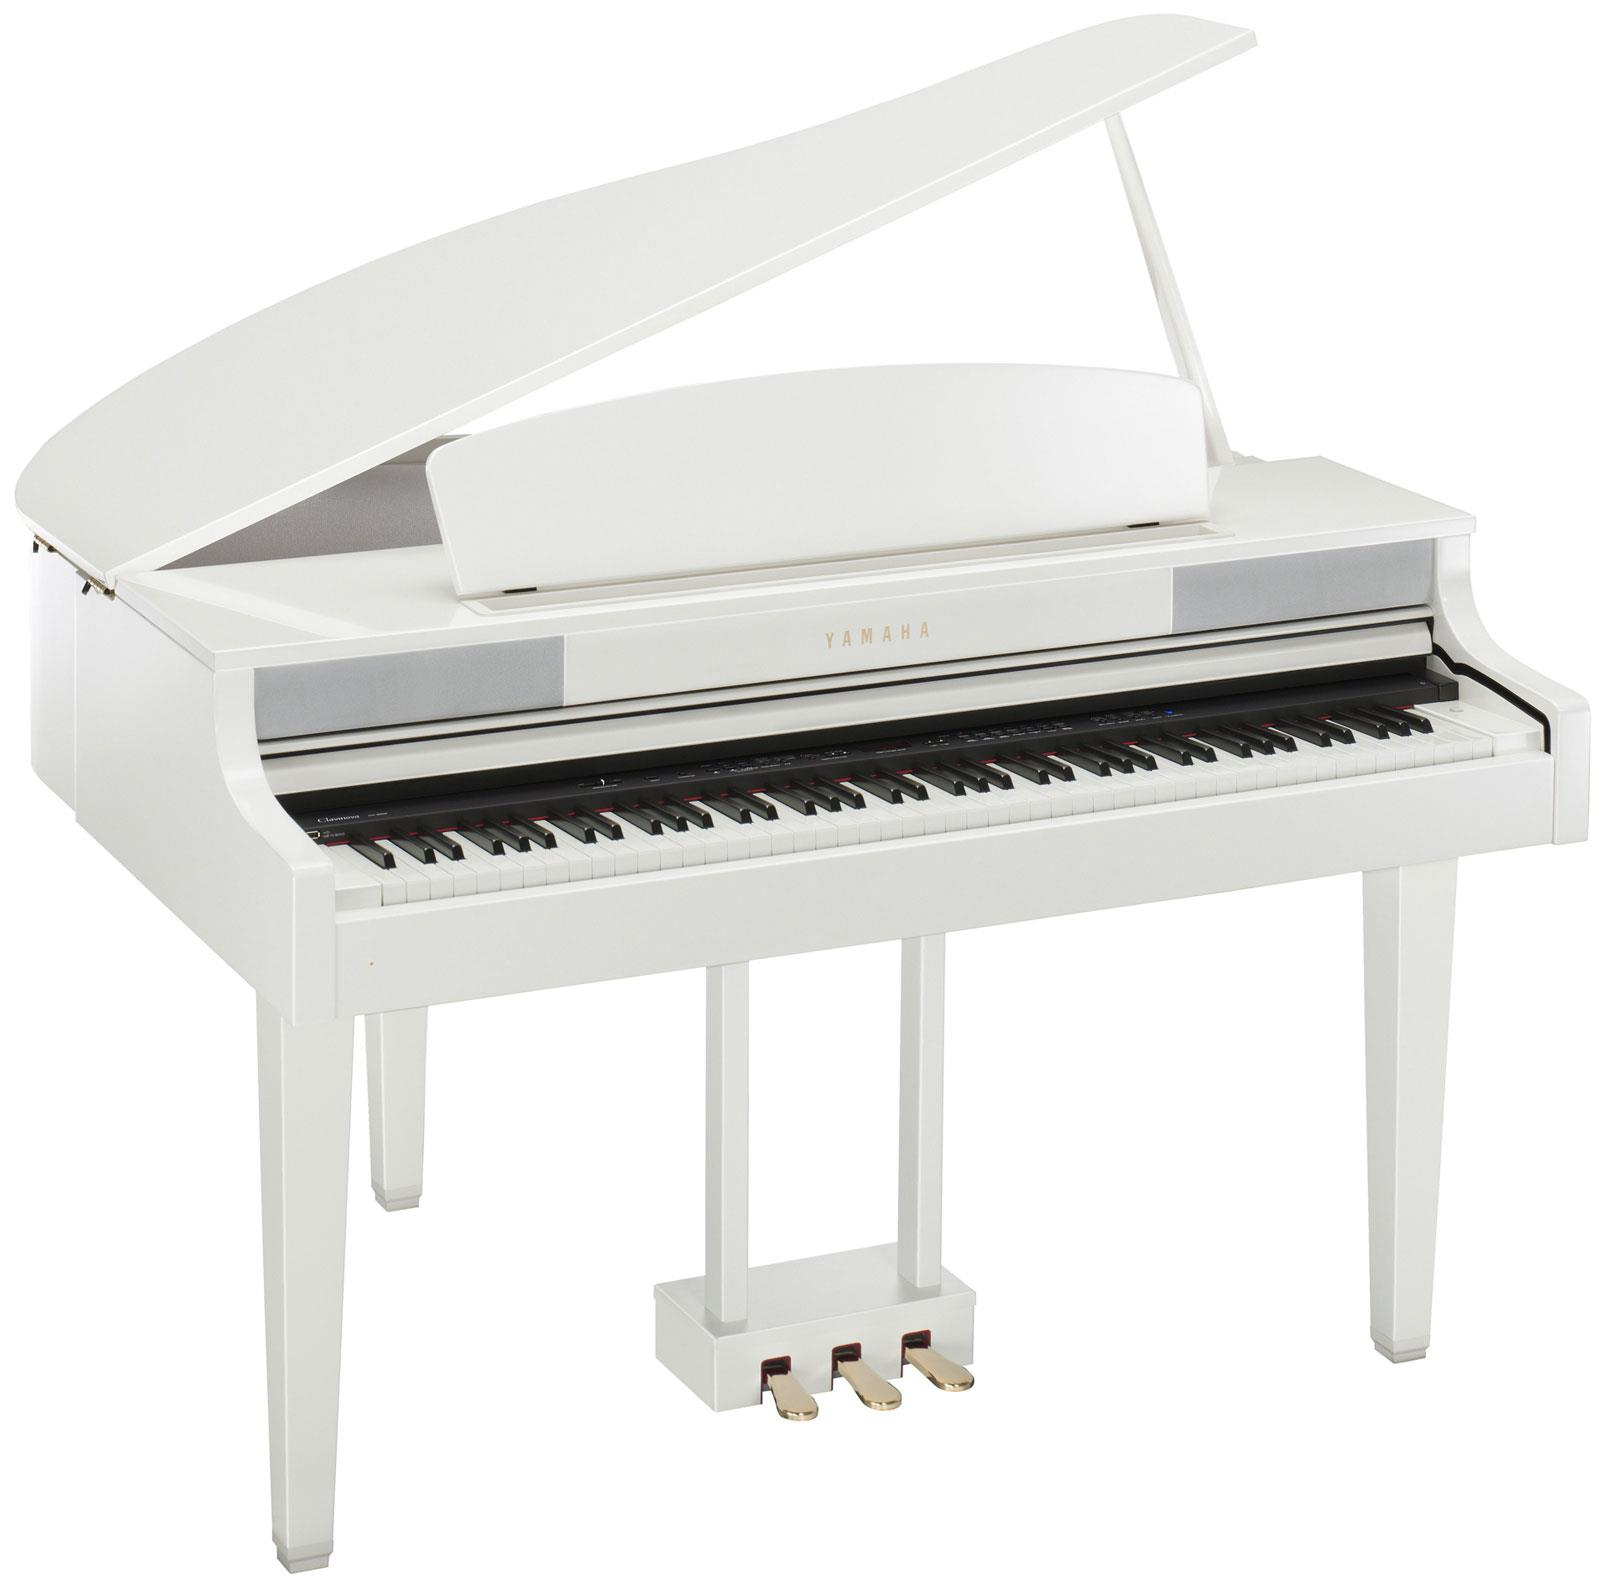 Yamaha clp 465gp white keymusic for White yamaha piano